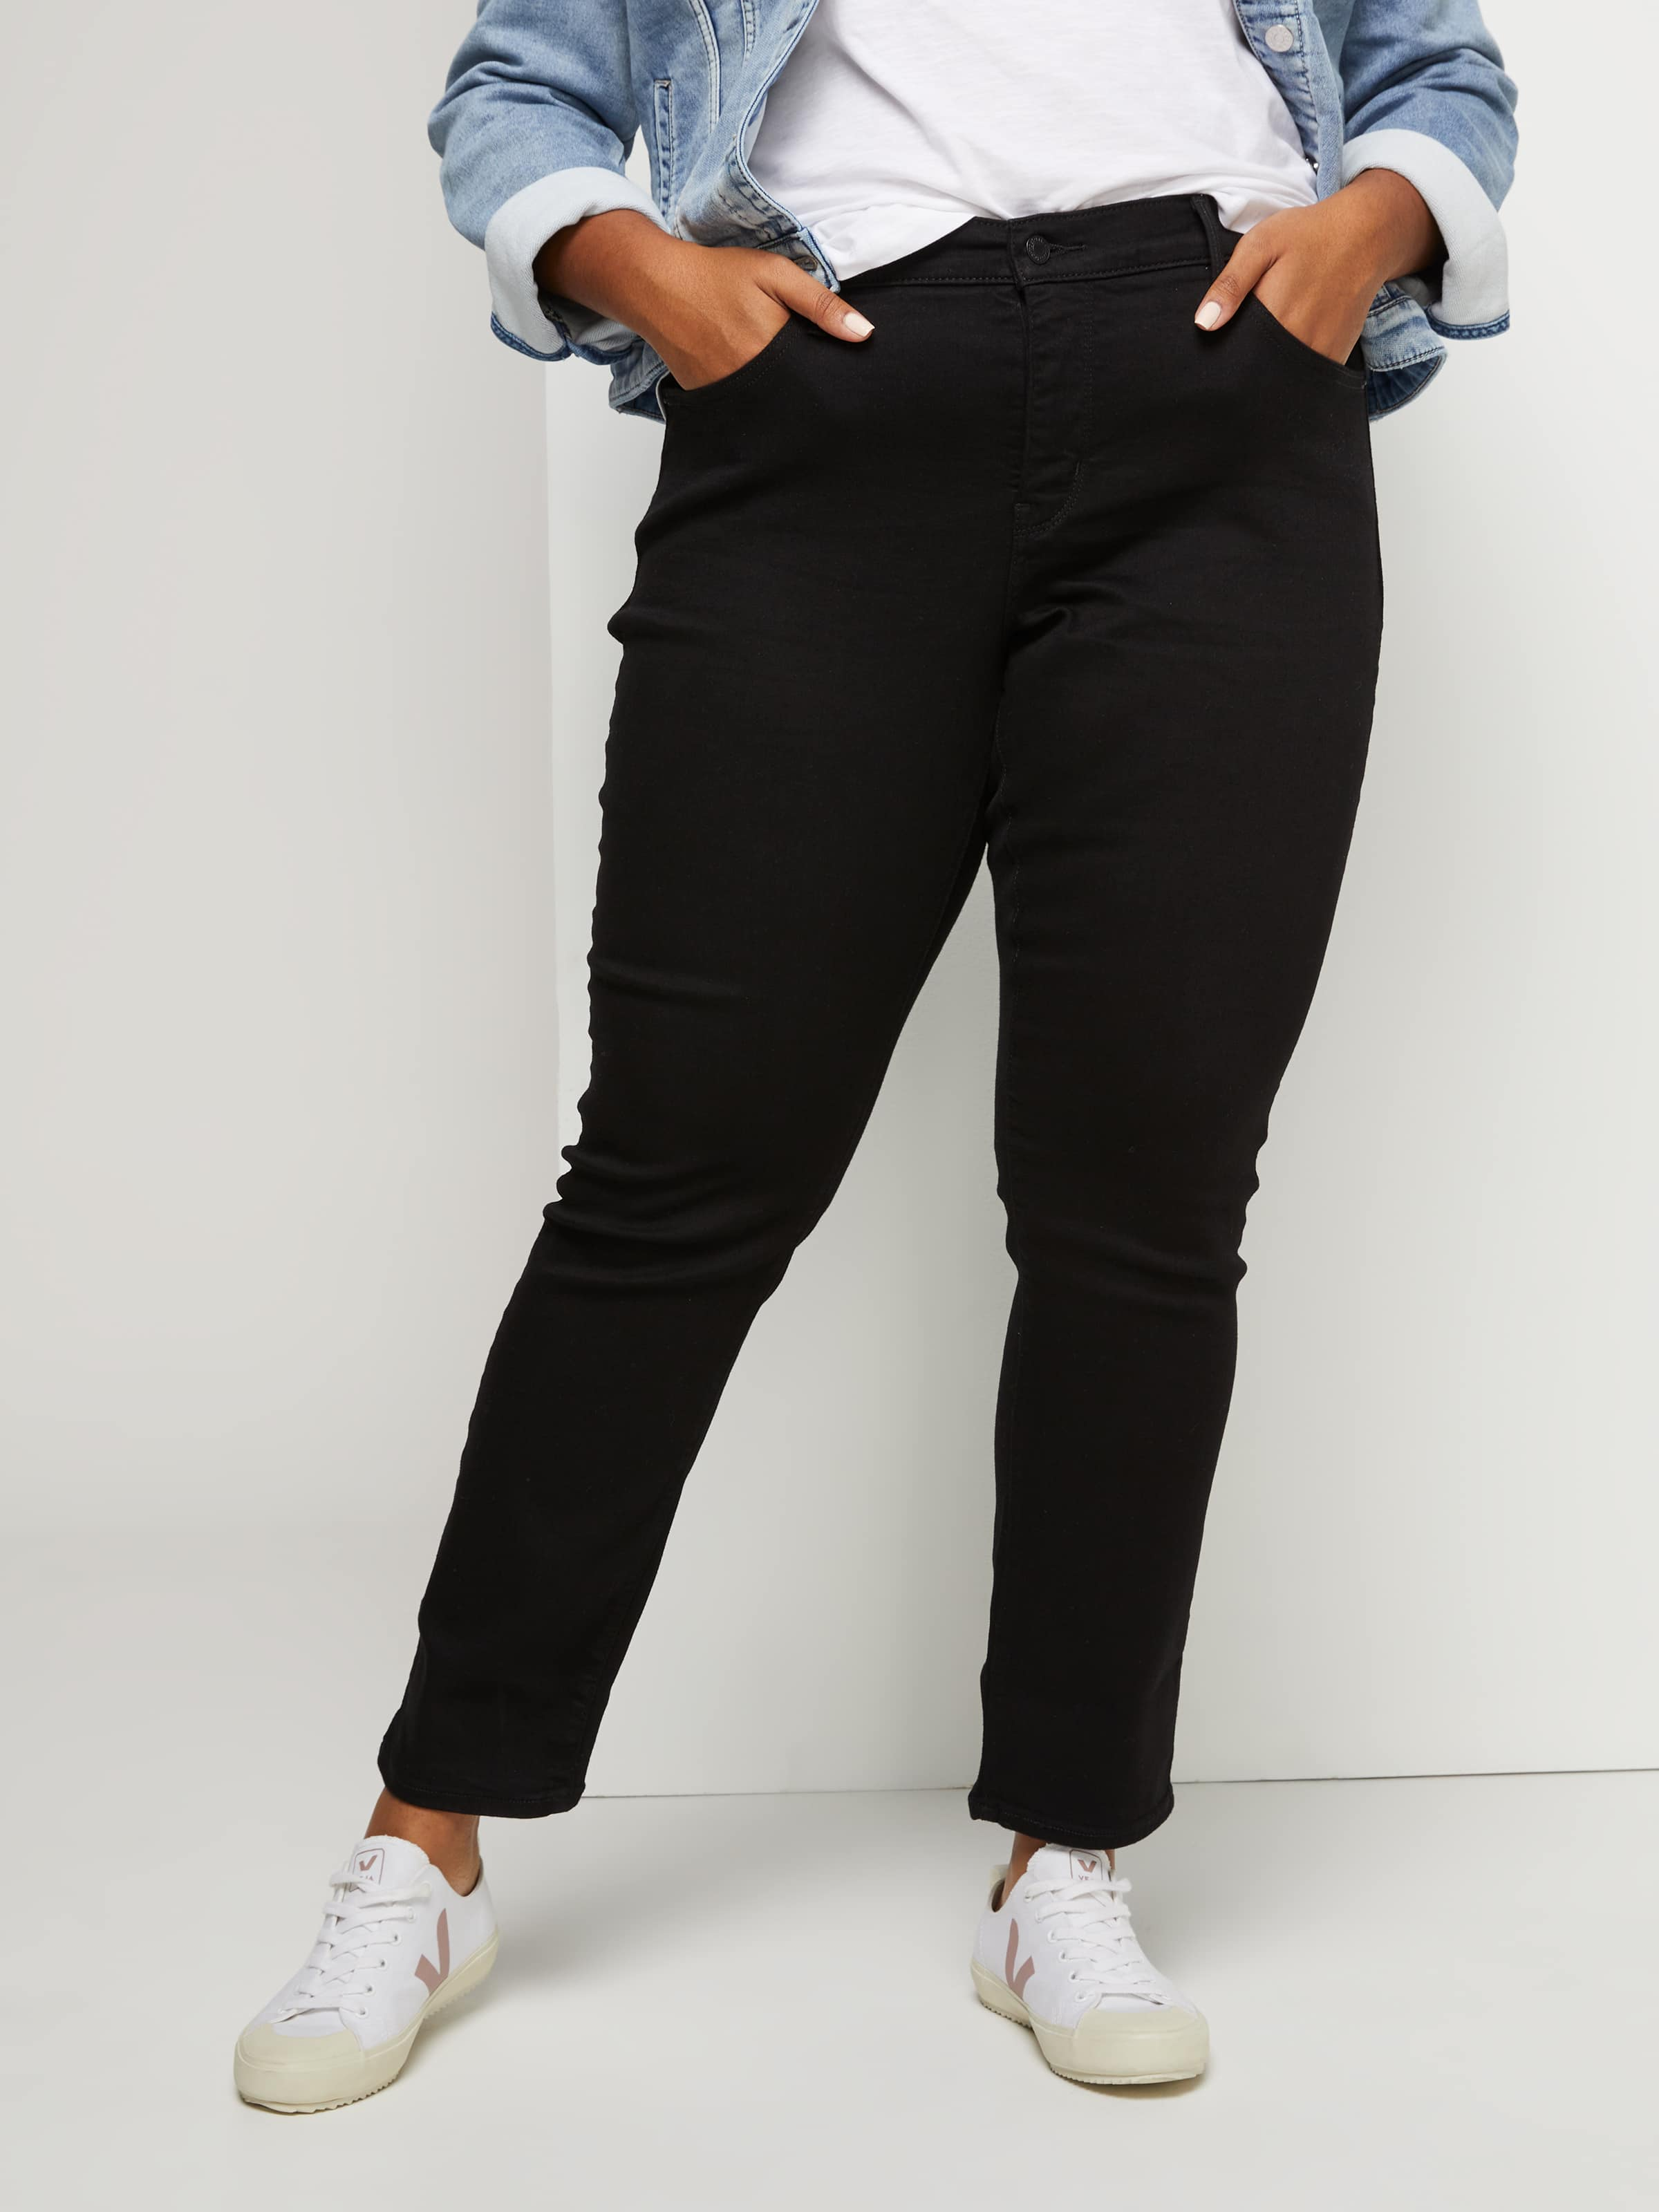 6d4e773caca Image for Levi s Plus 311 Shaping Skinny Jean In Soft Black from Just Jeans  ...